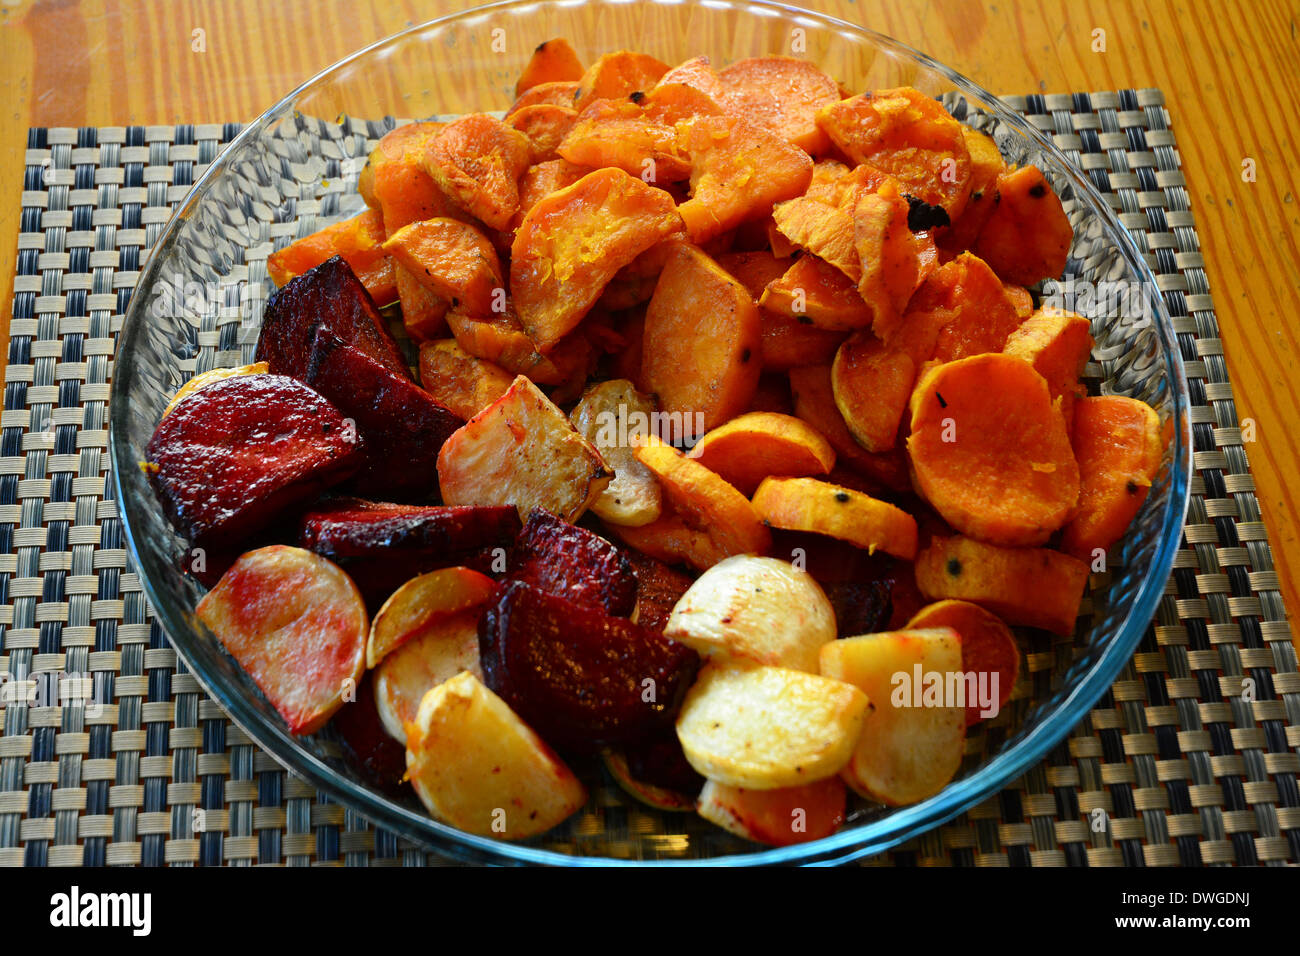 Root Vegetable, Baked - Stock Image